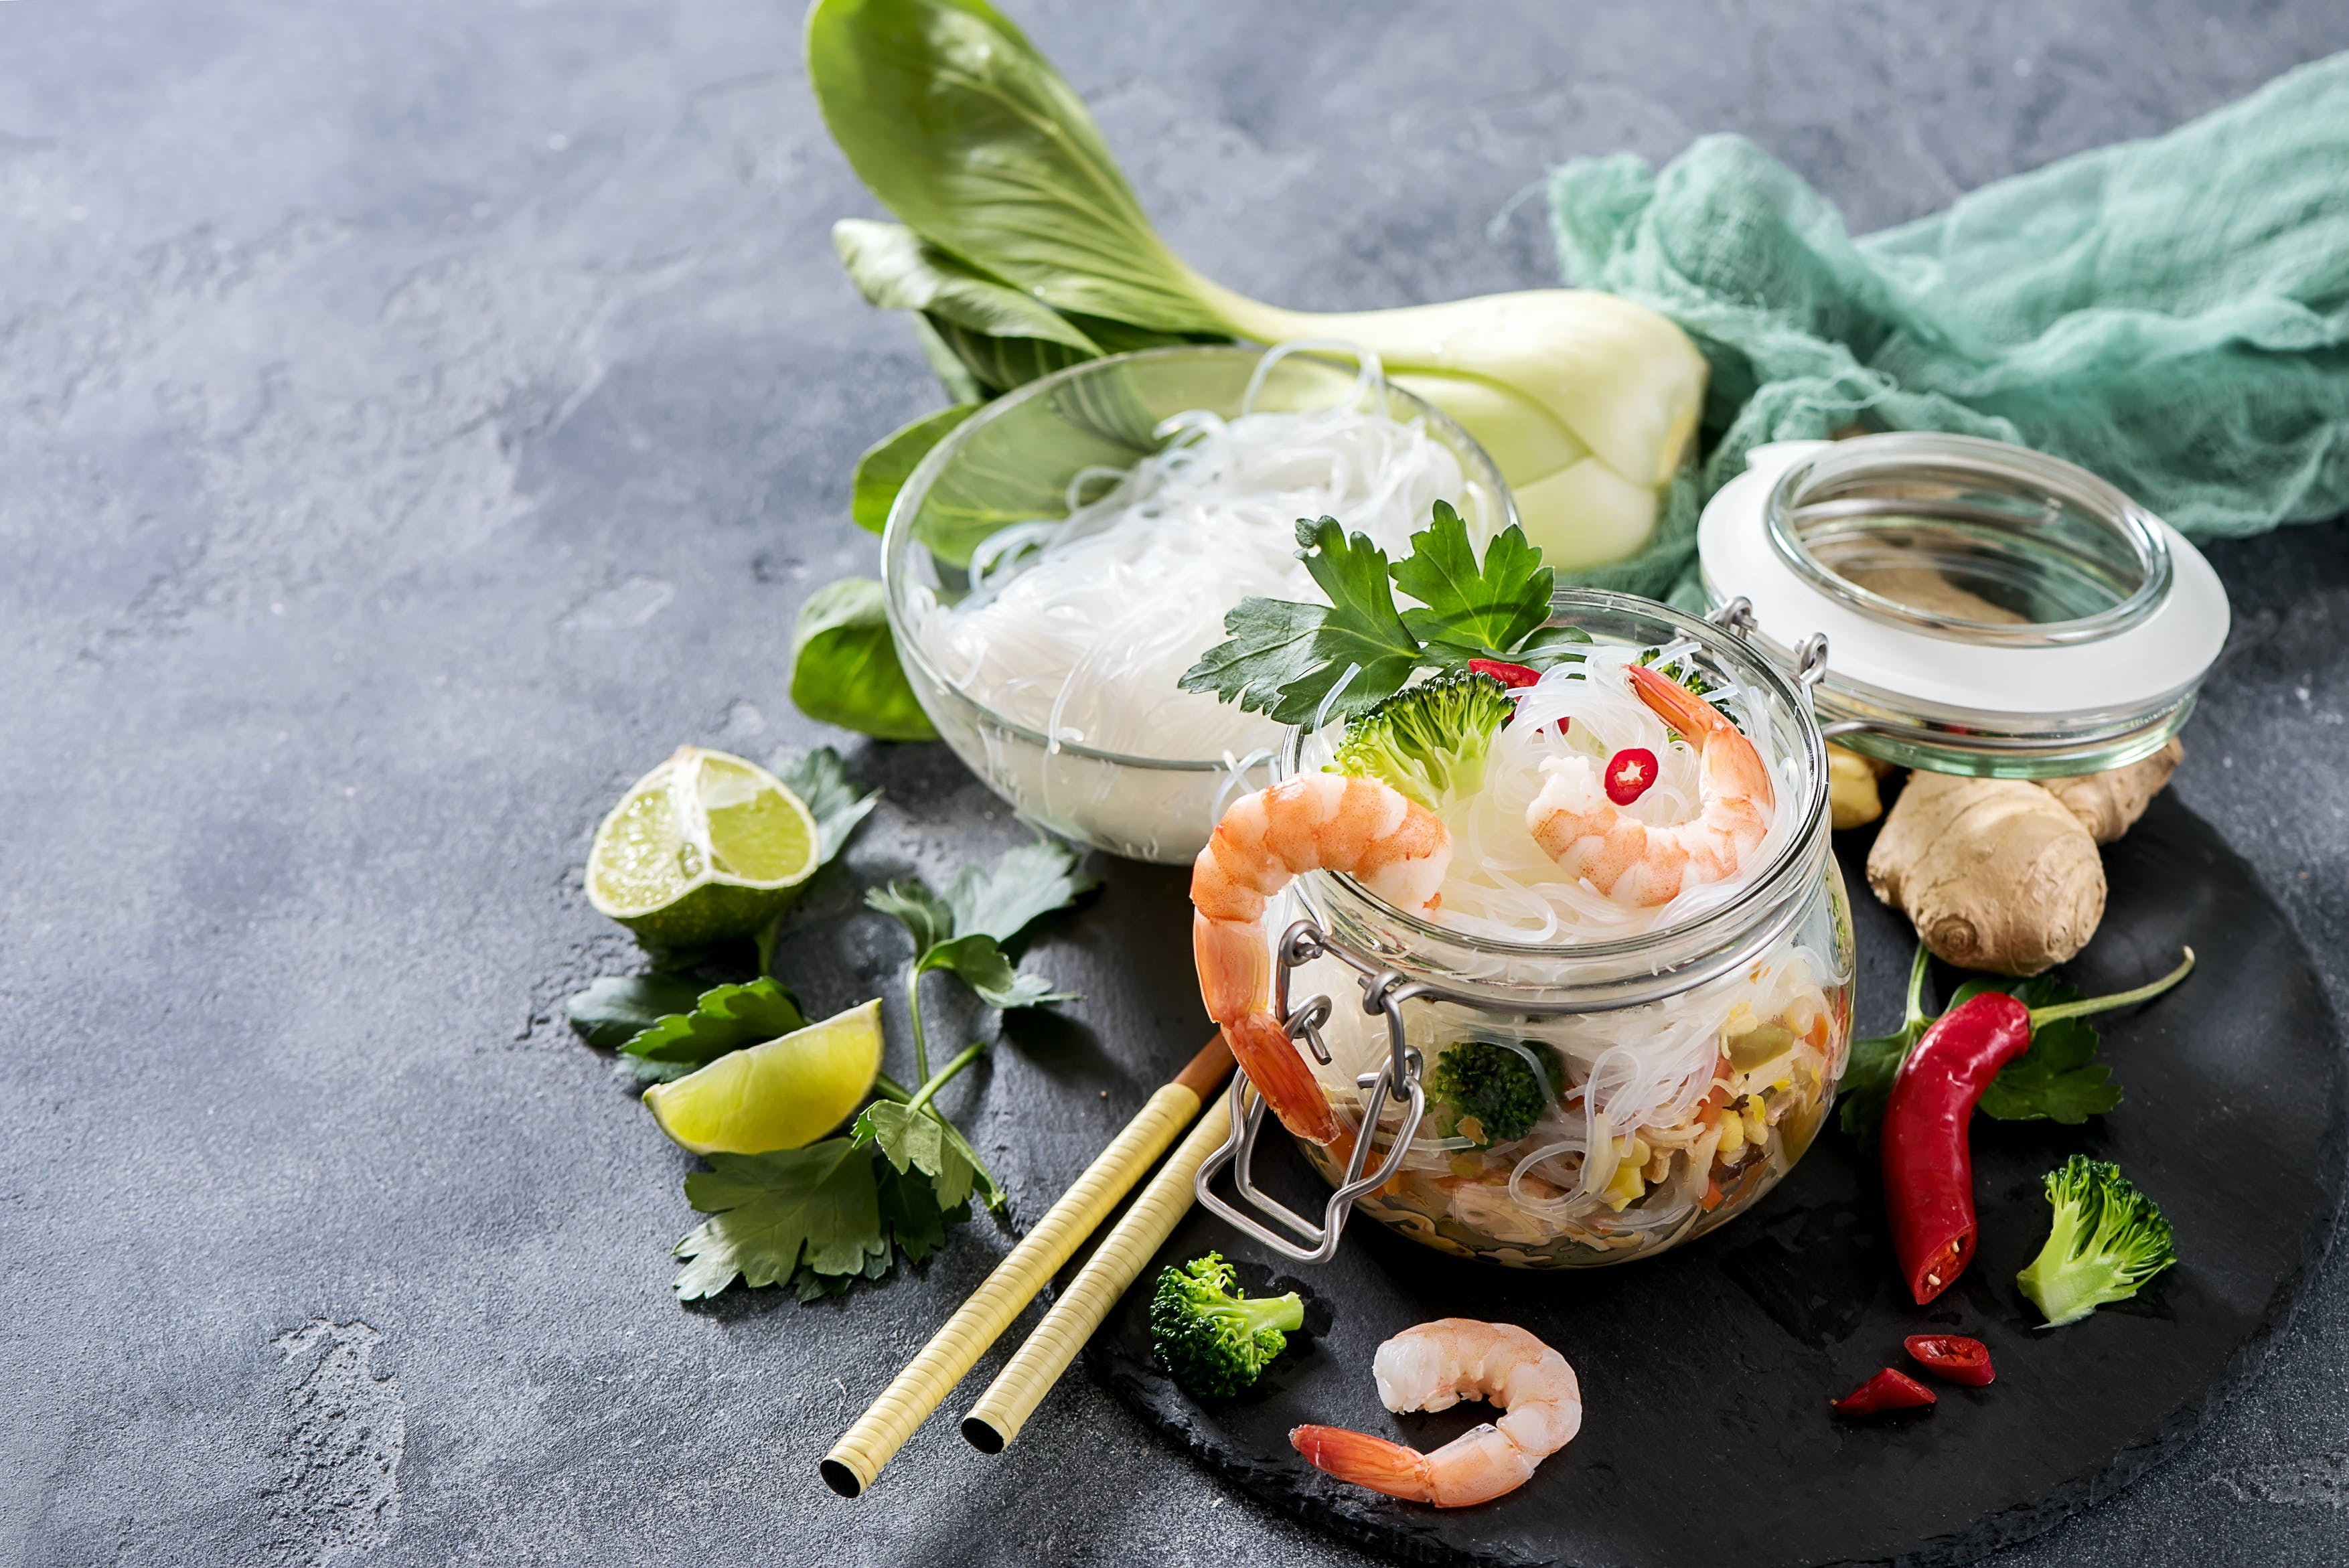 Prawn Noodles in a Jar